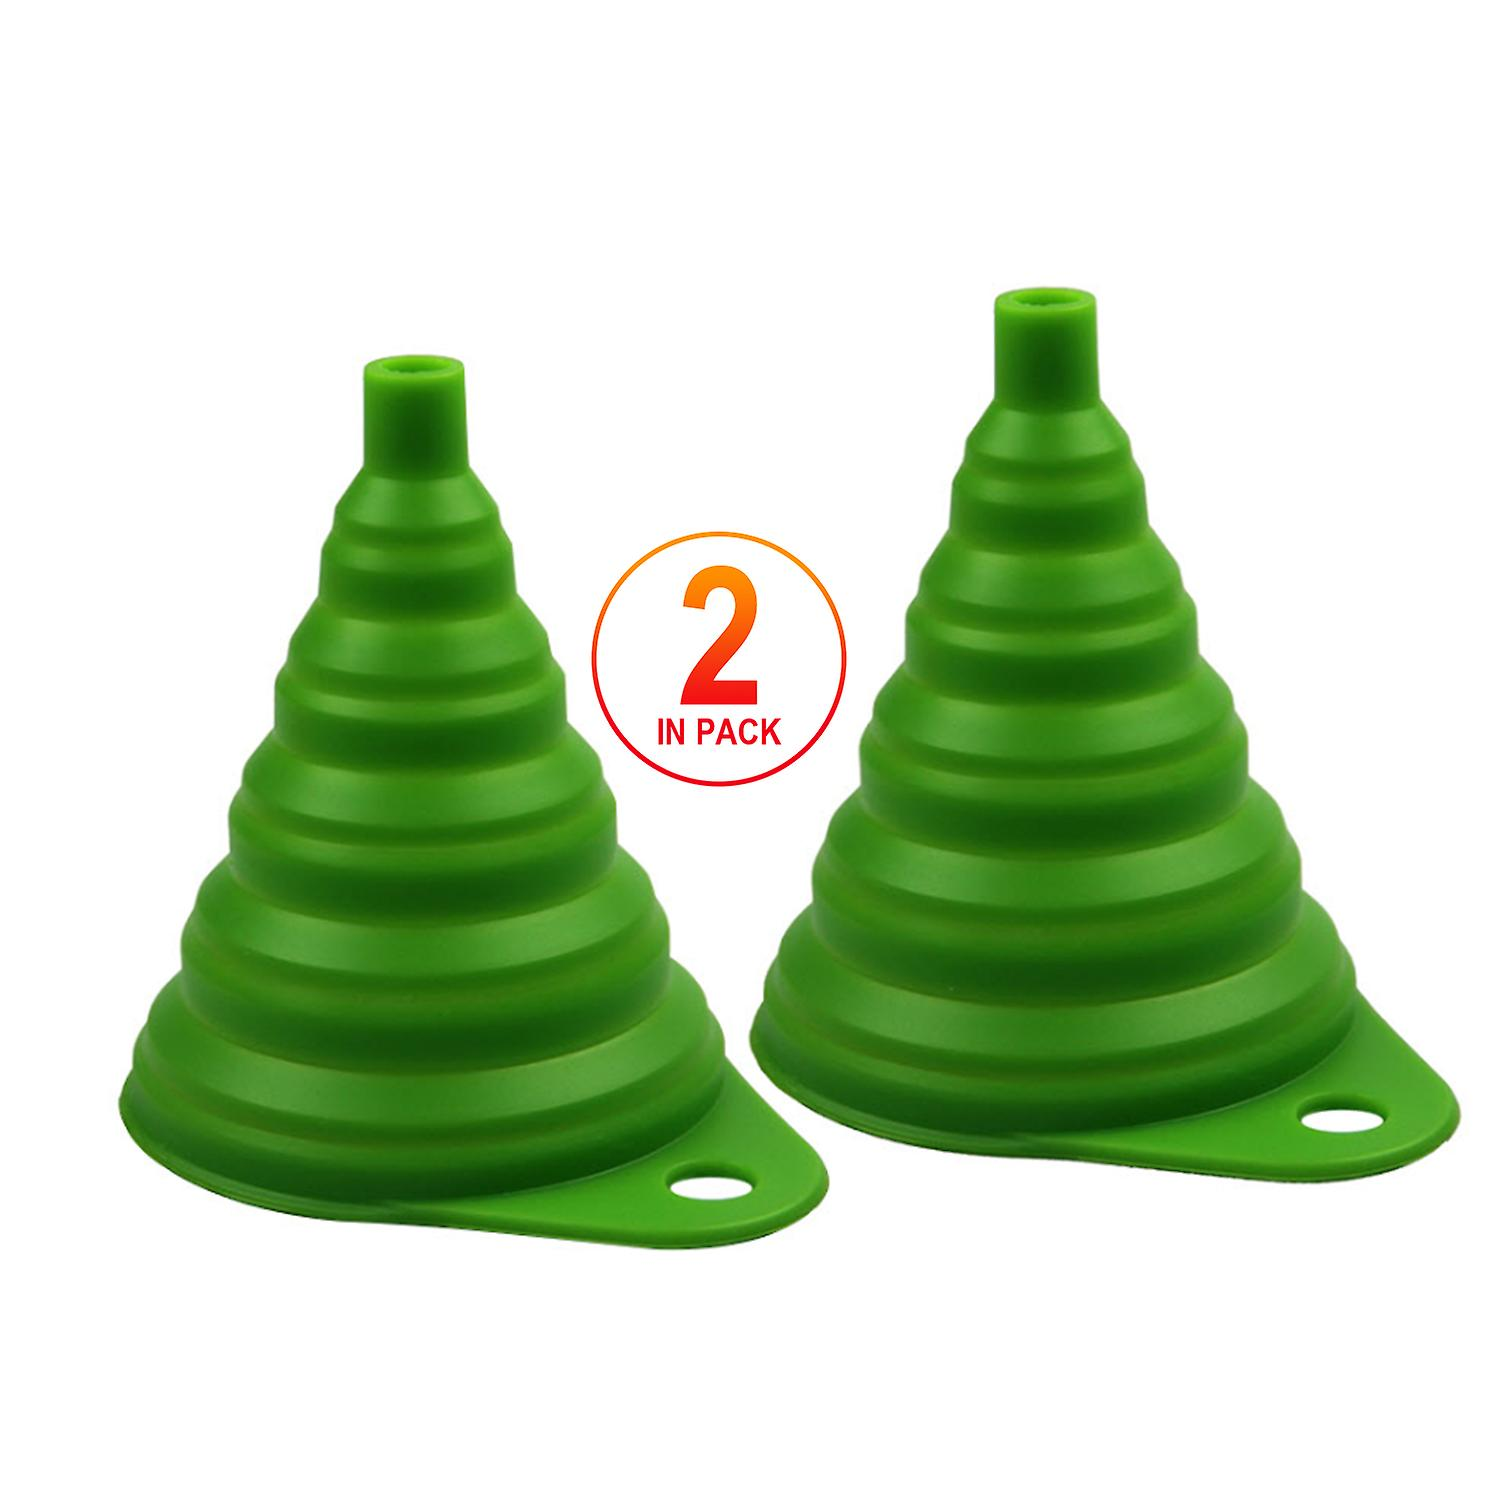 Tritina Home & Kitchen Foldable Funnel,Silicone Collapsible Style,BPA-free,Heat Resistant,for dishwasher